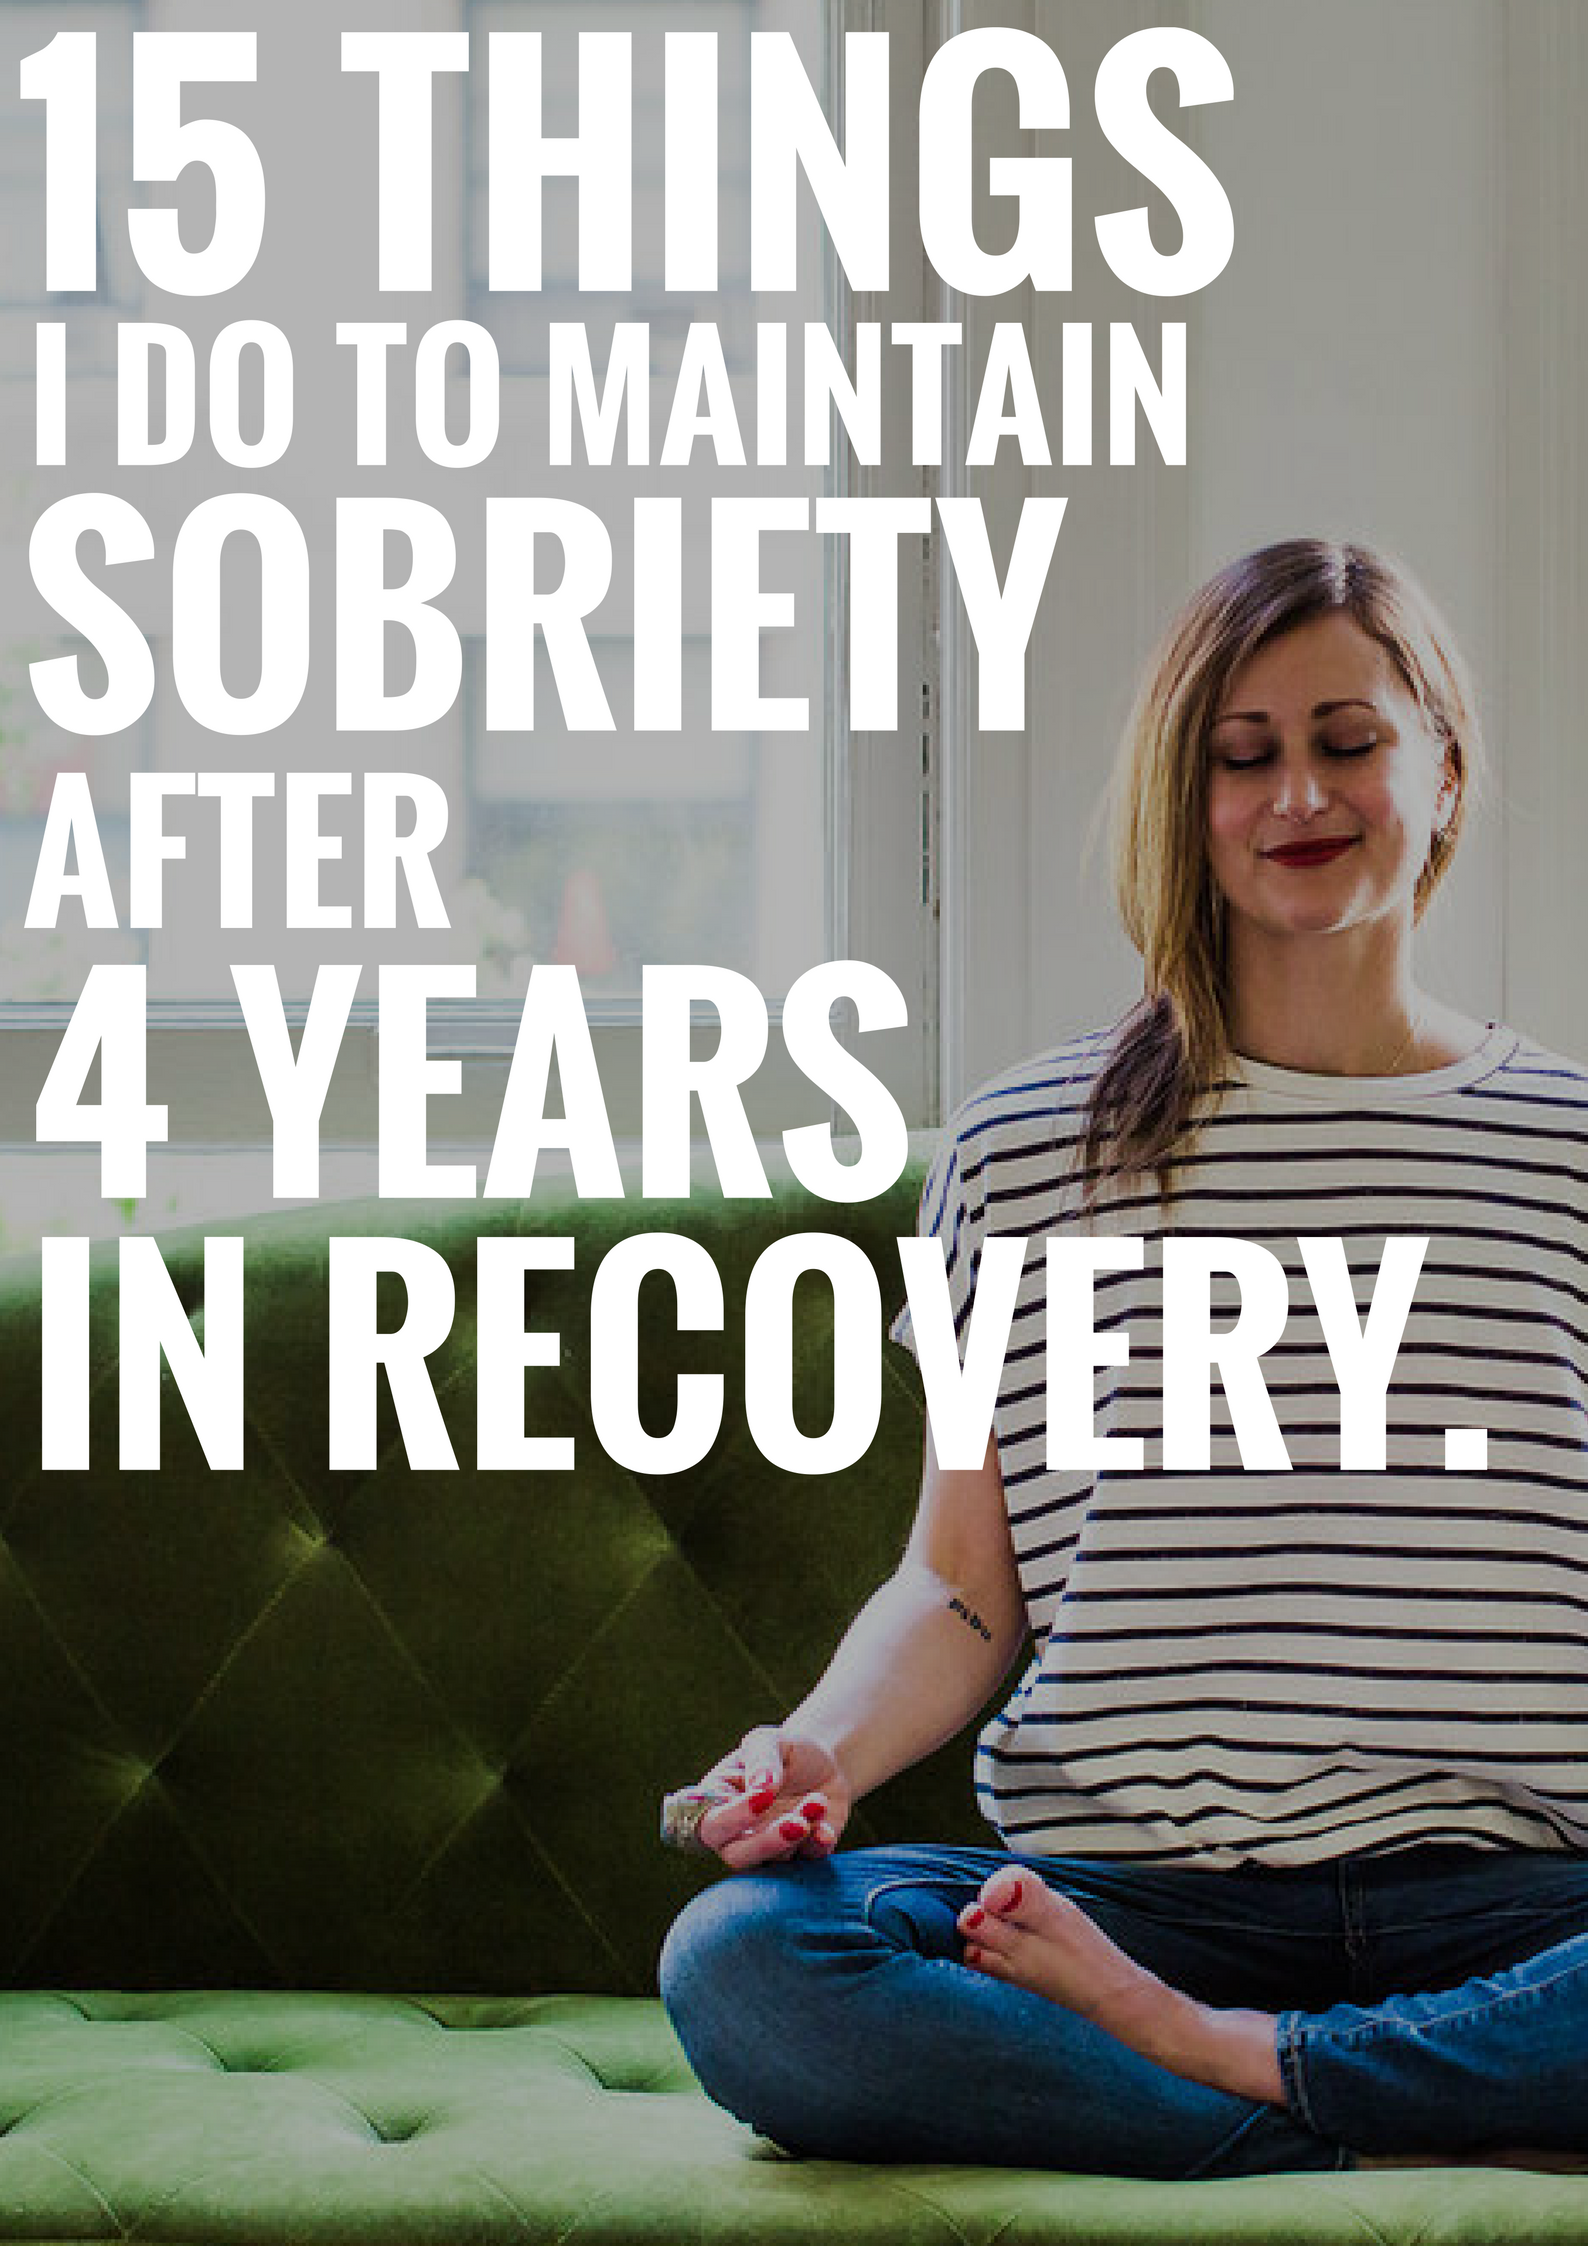 15 things i do to maintain sobriety